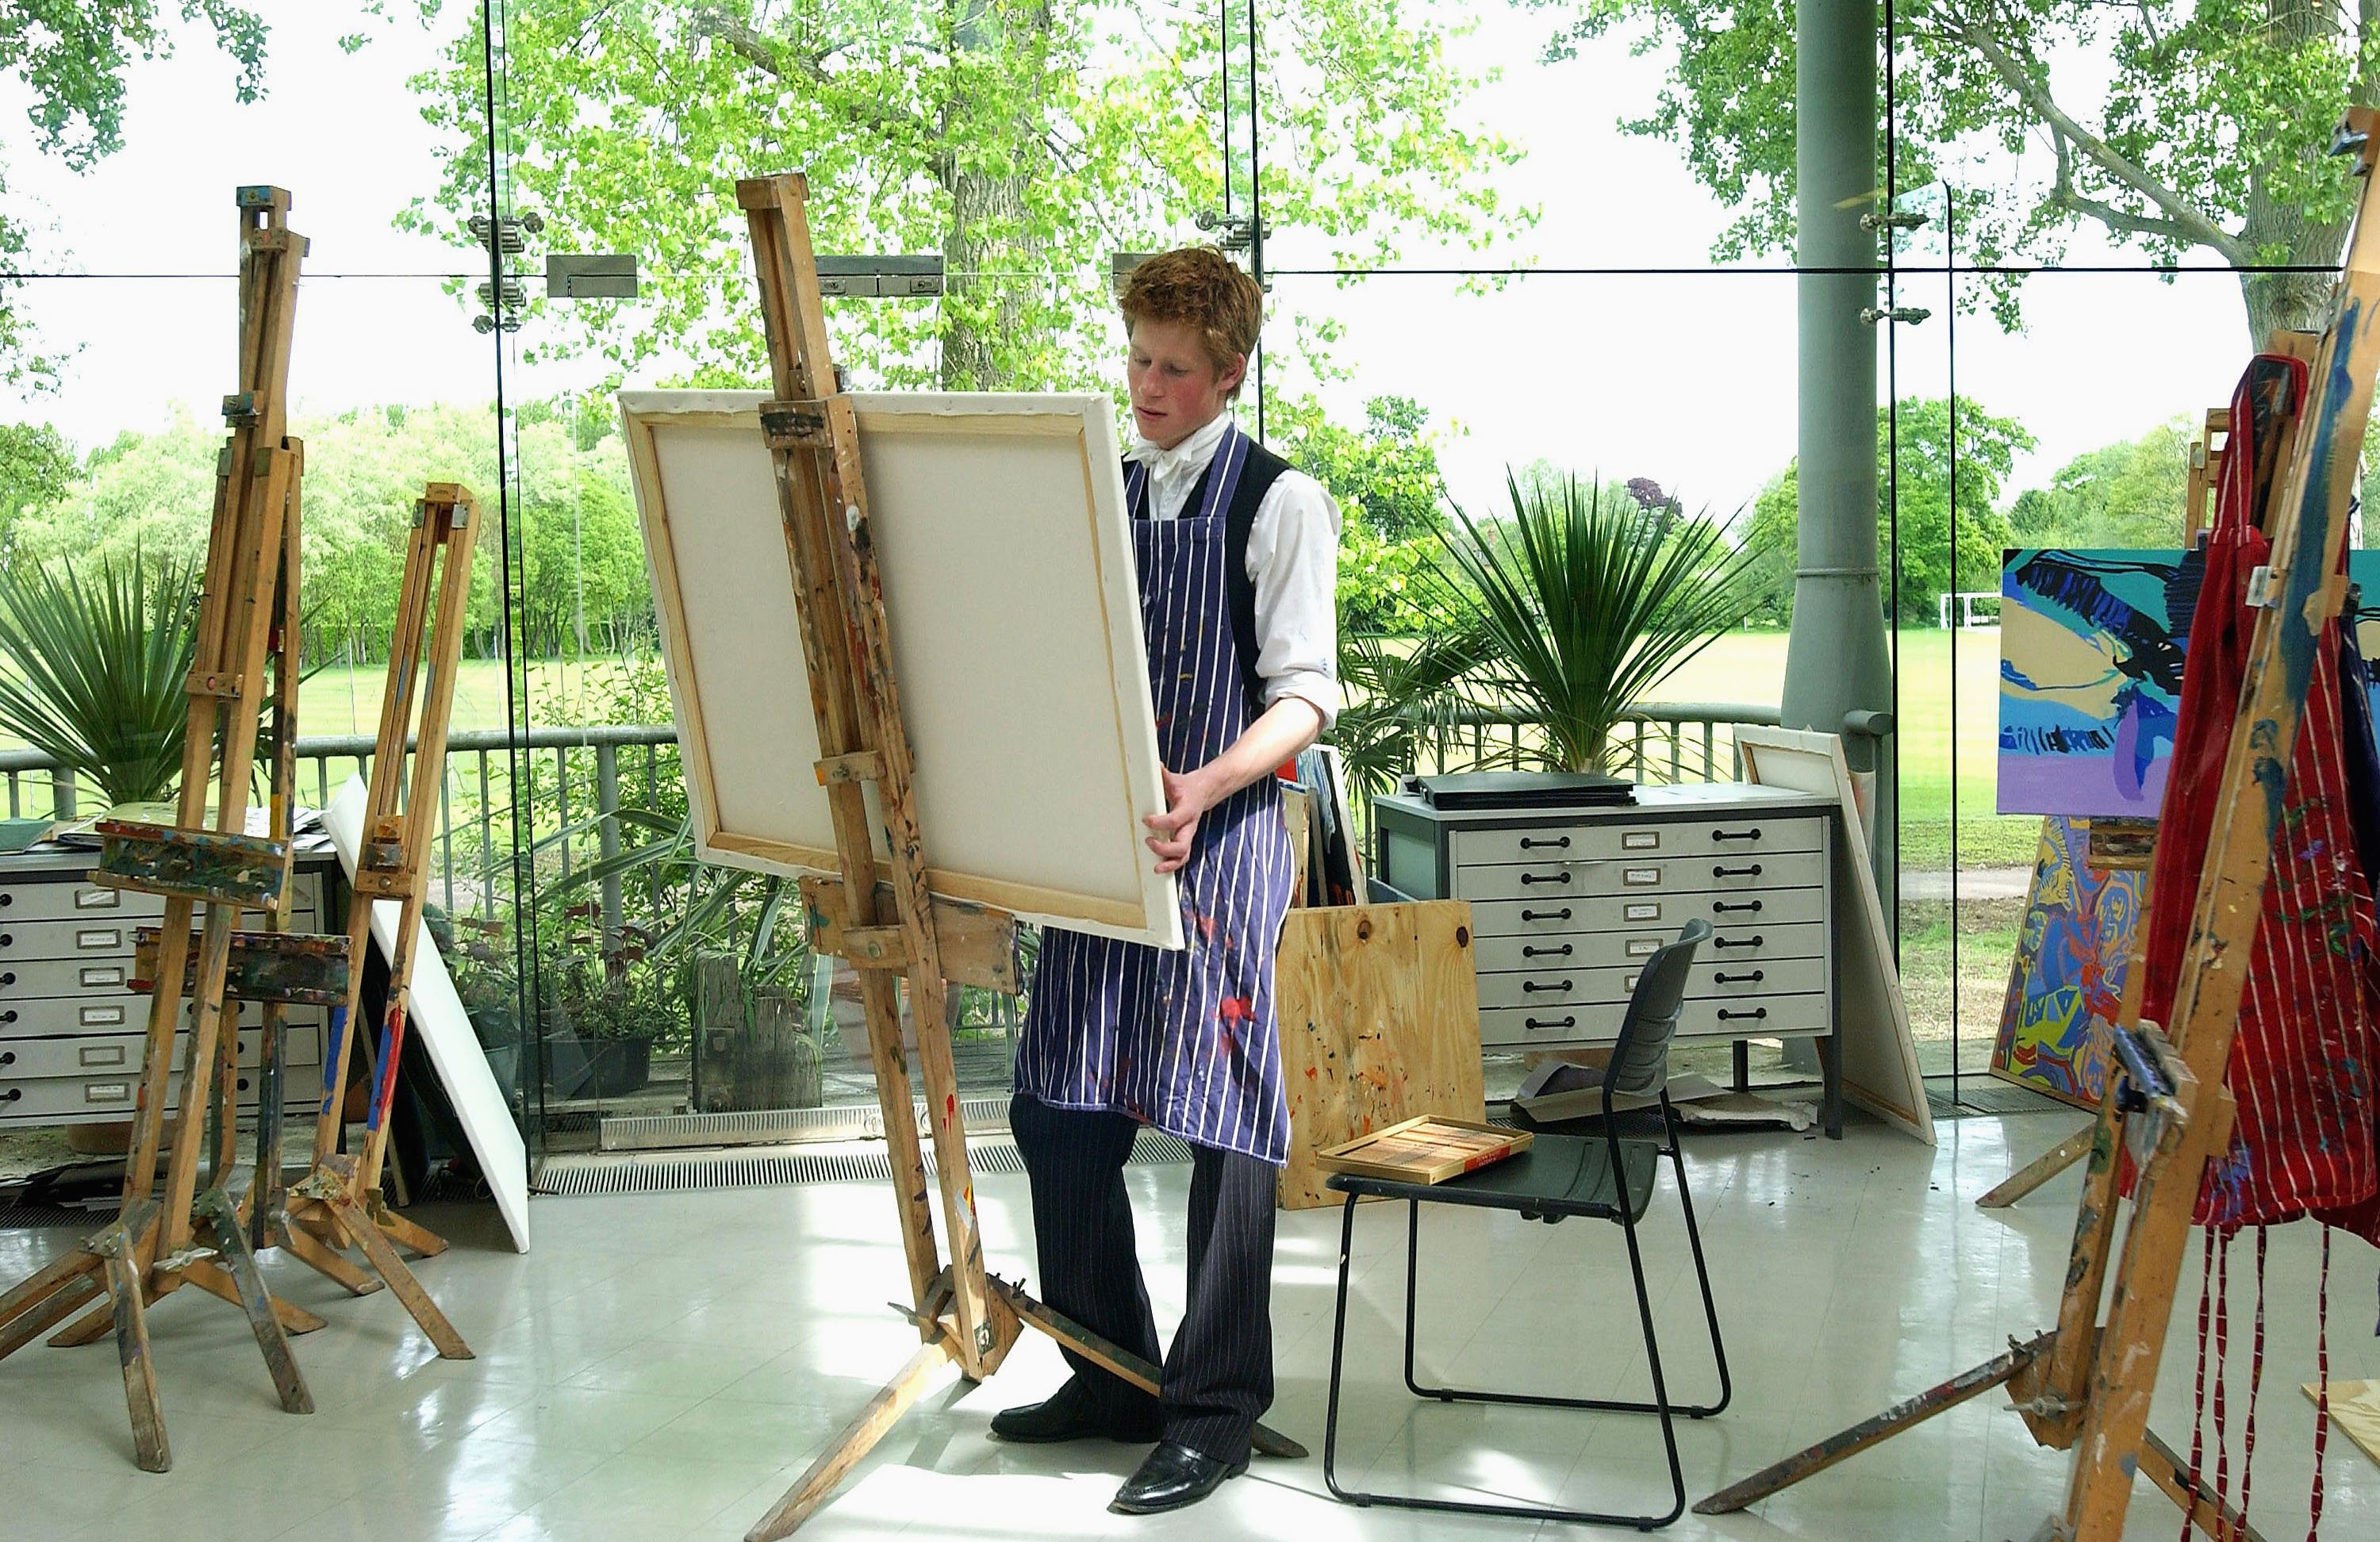 (FILE PHOTO) The youngest son of the Prince of Wales, Prince Harry at work on May 12, 2003 in the Drawing School at Eton College, Eton in England. The Royal Family on October 9, 2004 denied allegations that the Prince had cheated in his art A-level